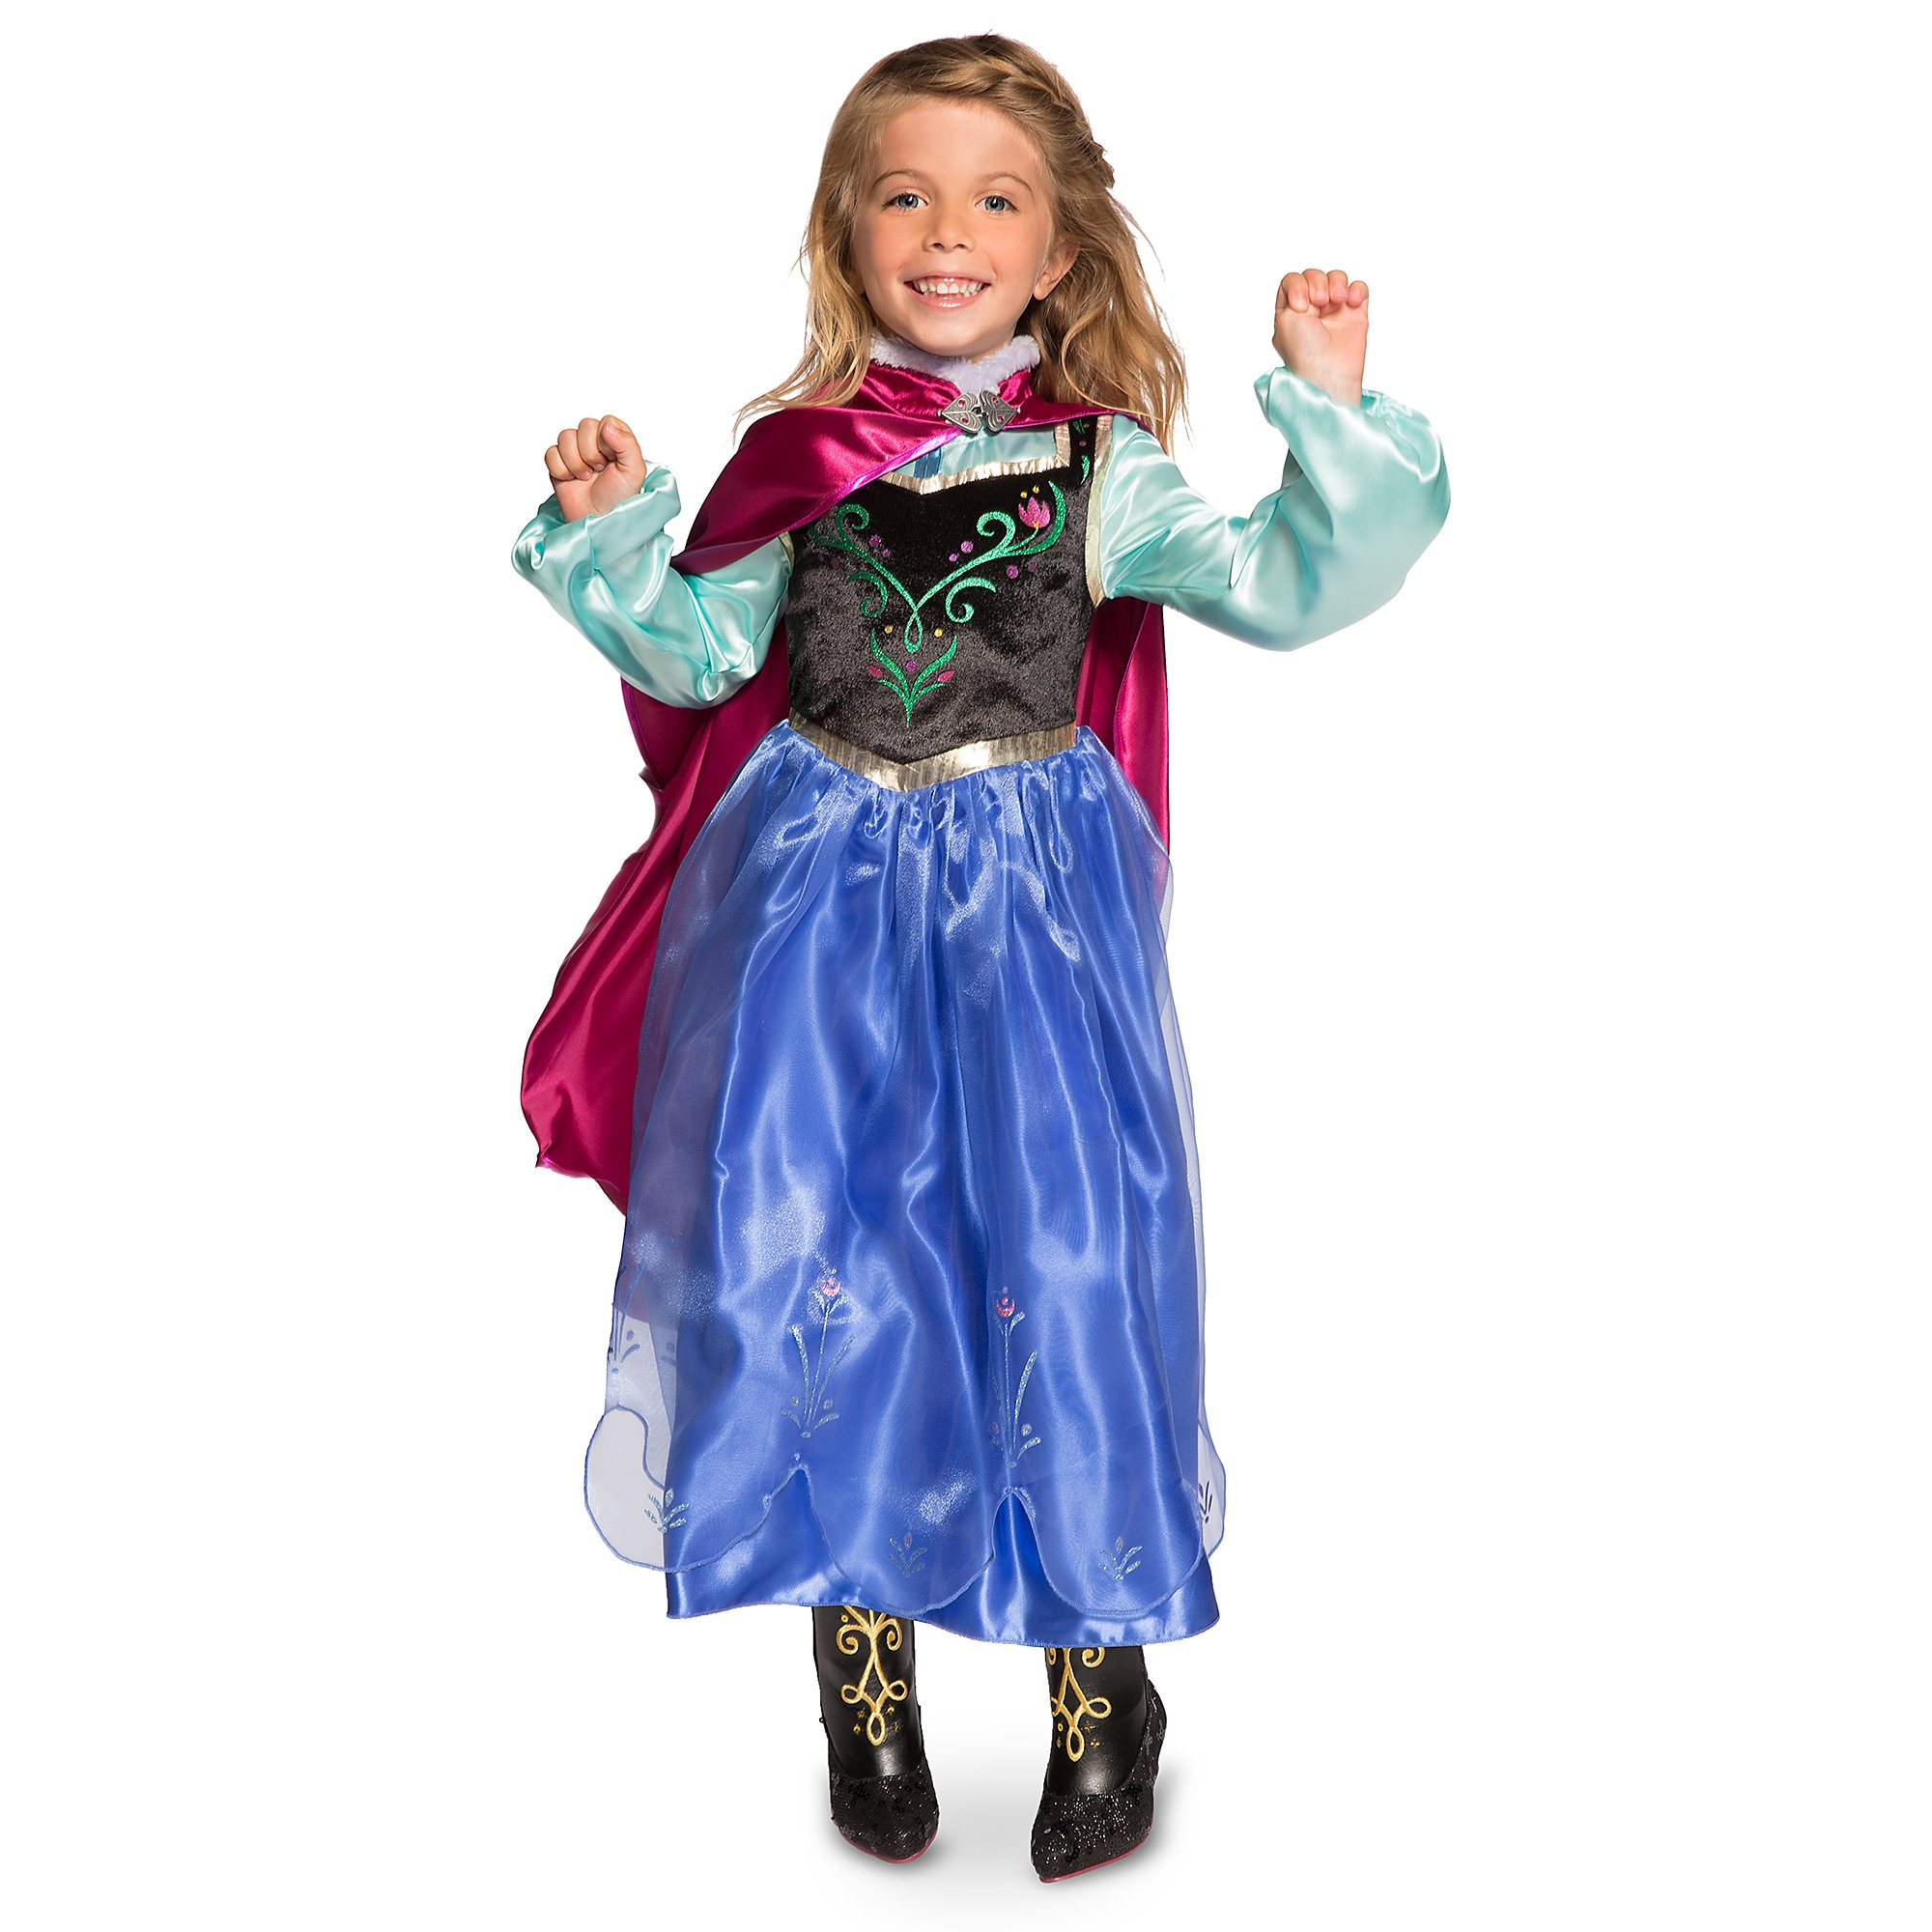 Thumbnail Image of Anna Costume for Kids # 2  sc 1 st  shopDisney & Anna Costume for Kids | shopDisney